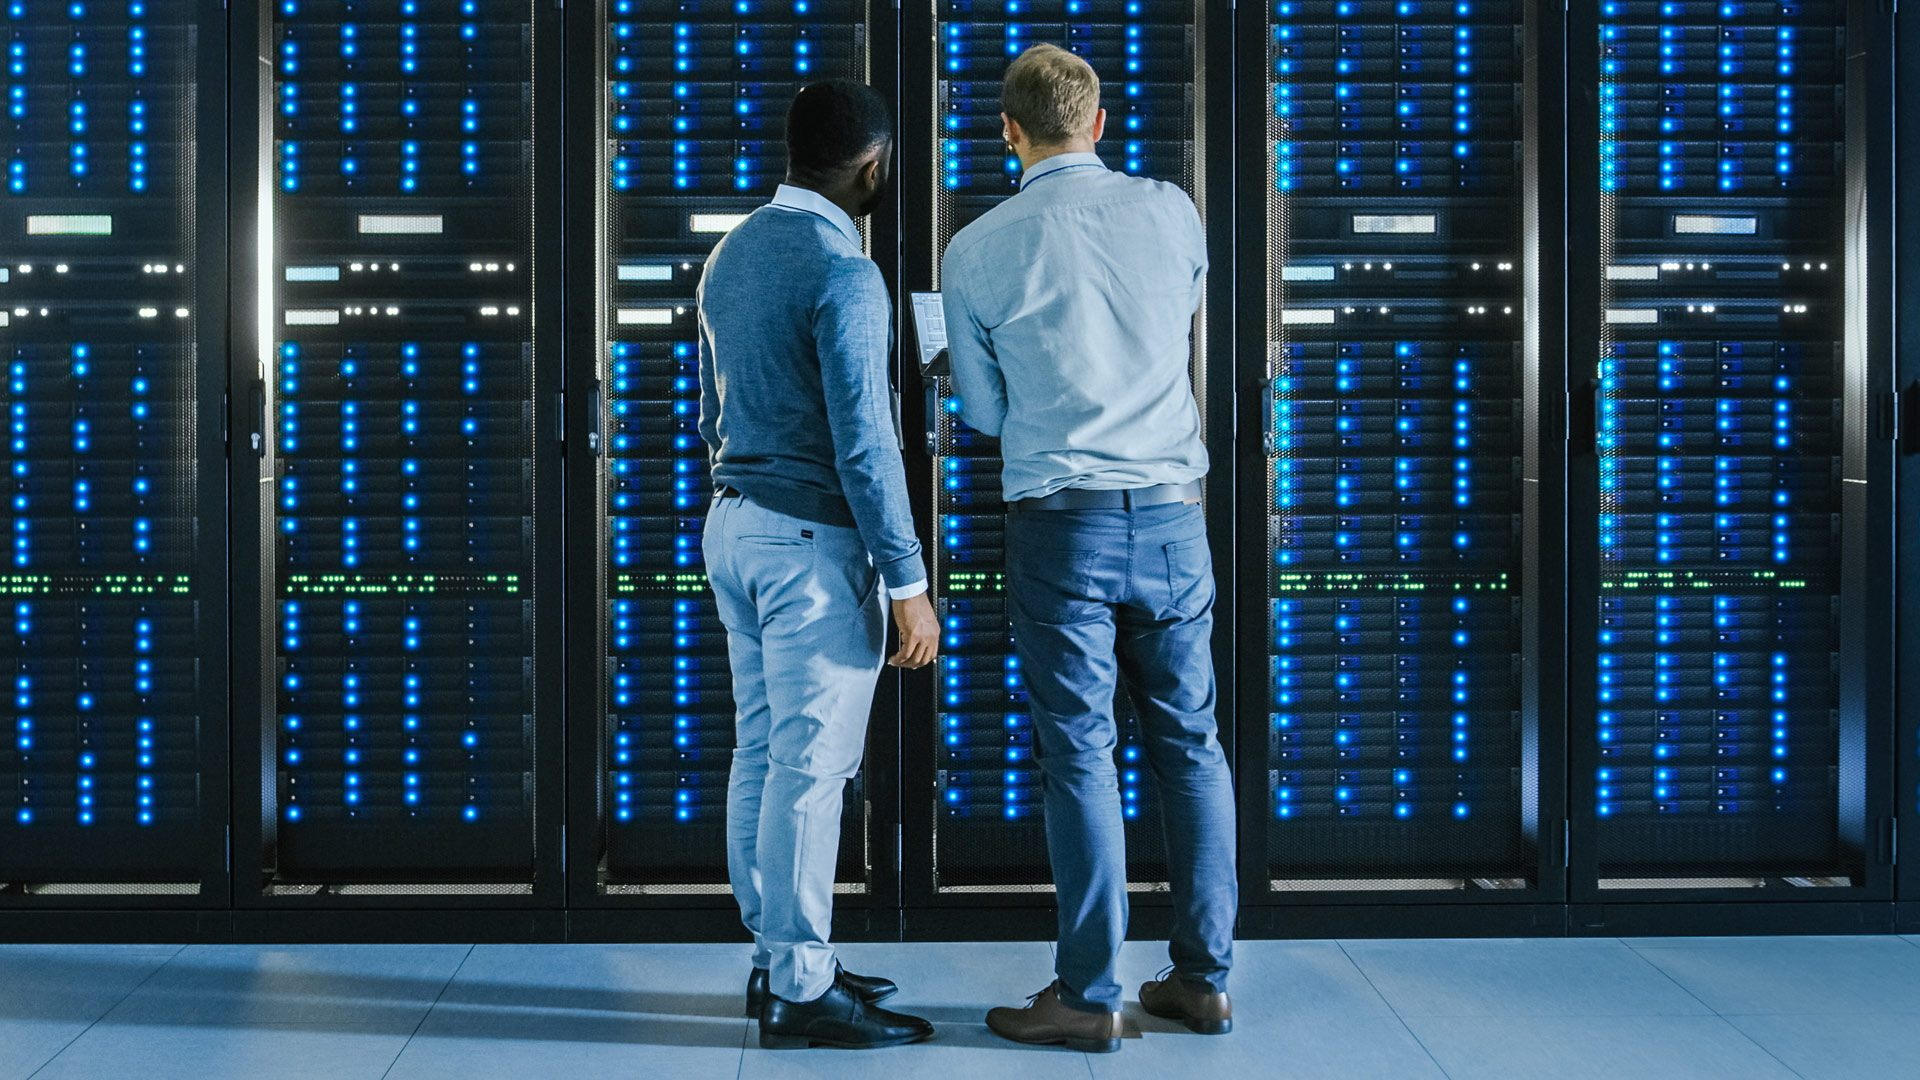 Two people standing in front of a generic server rack meant to convey AWS.